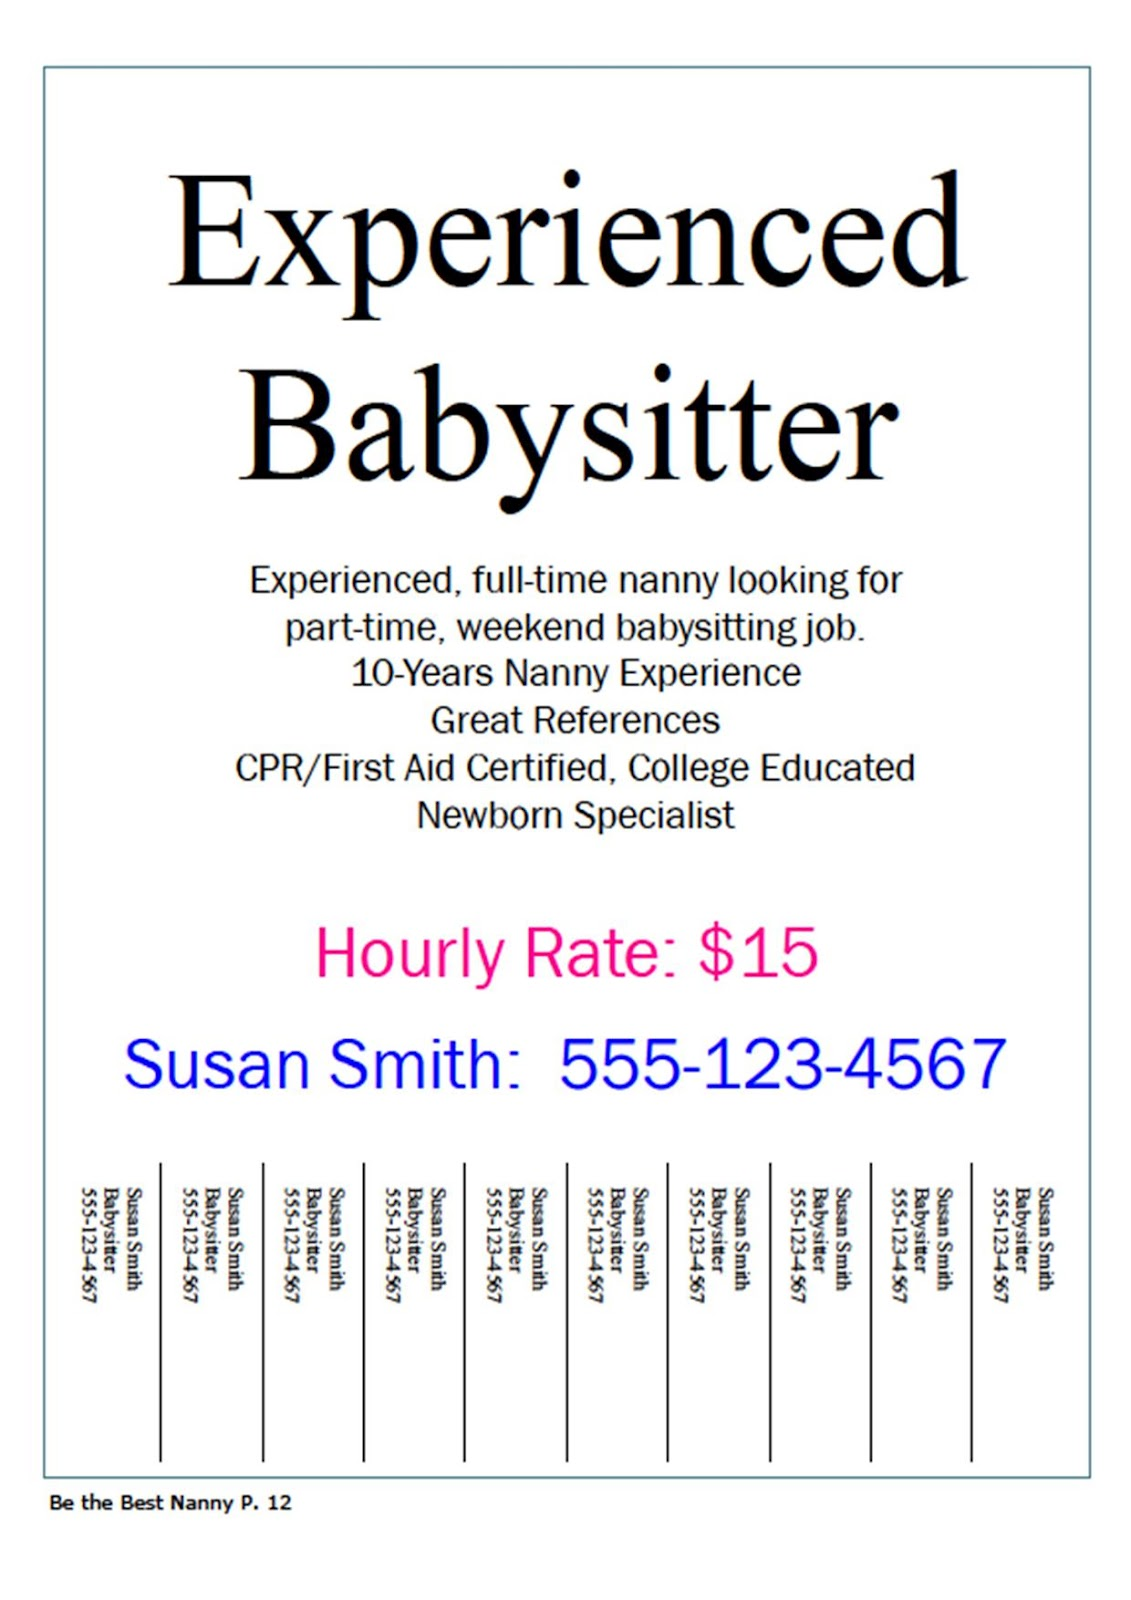 babysitter needed flyer template babysitter needed flyer